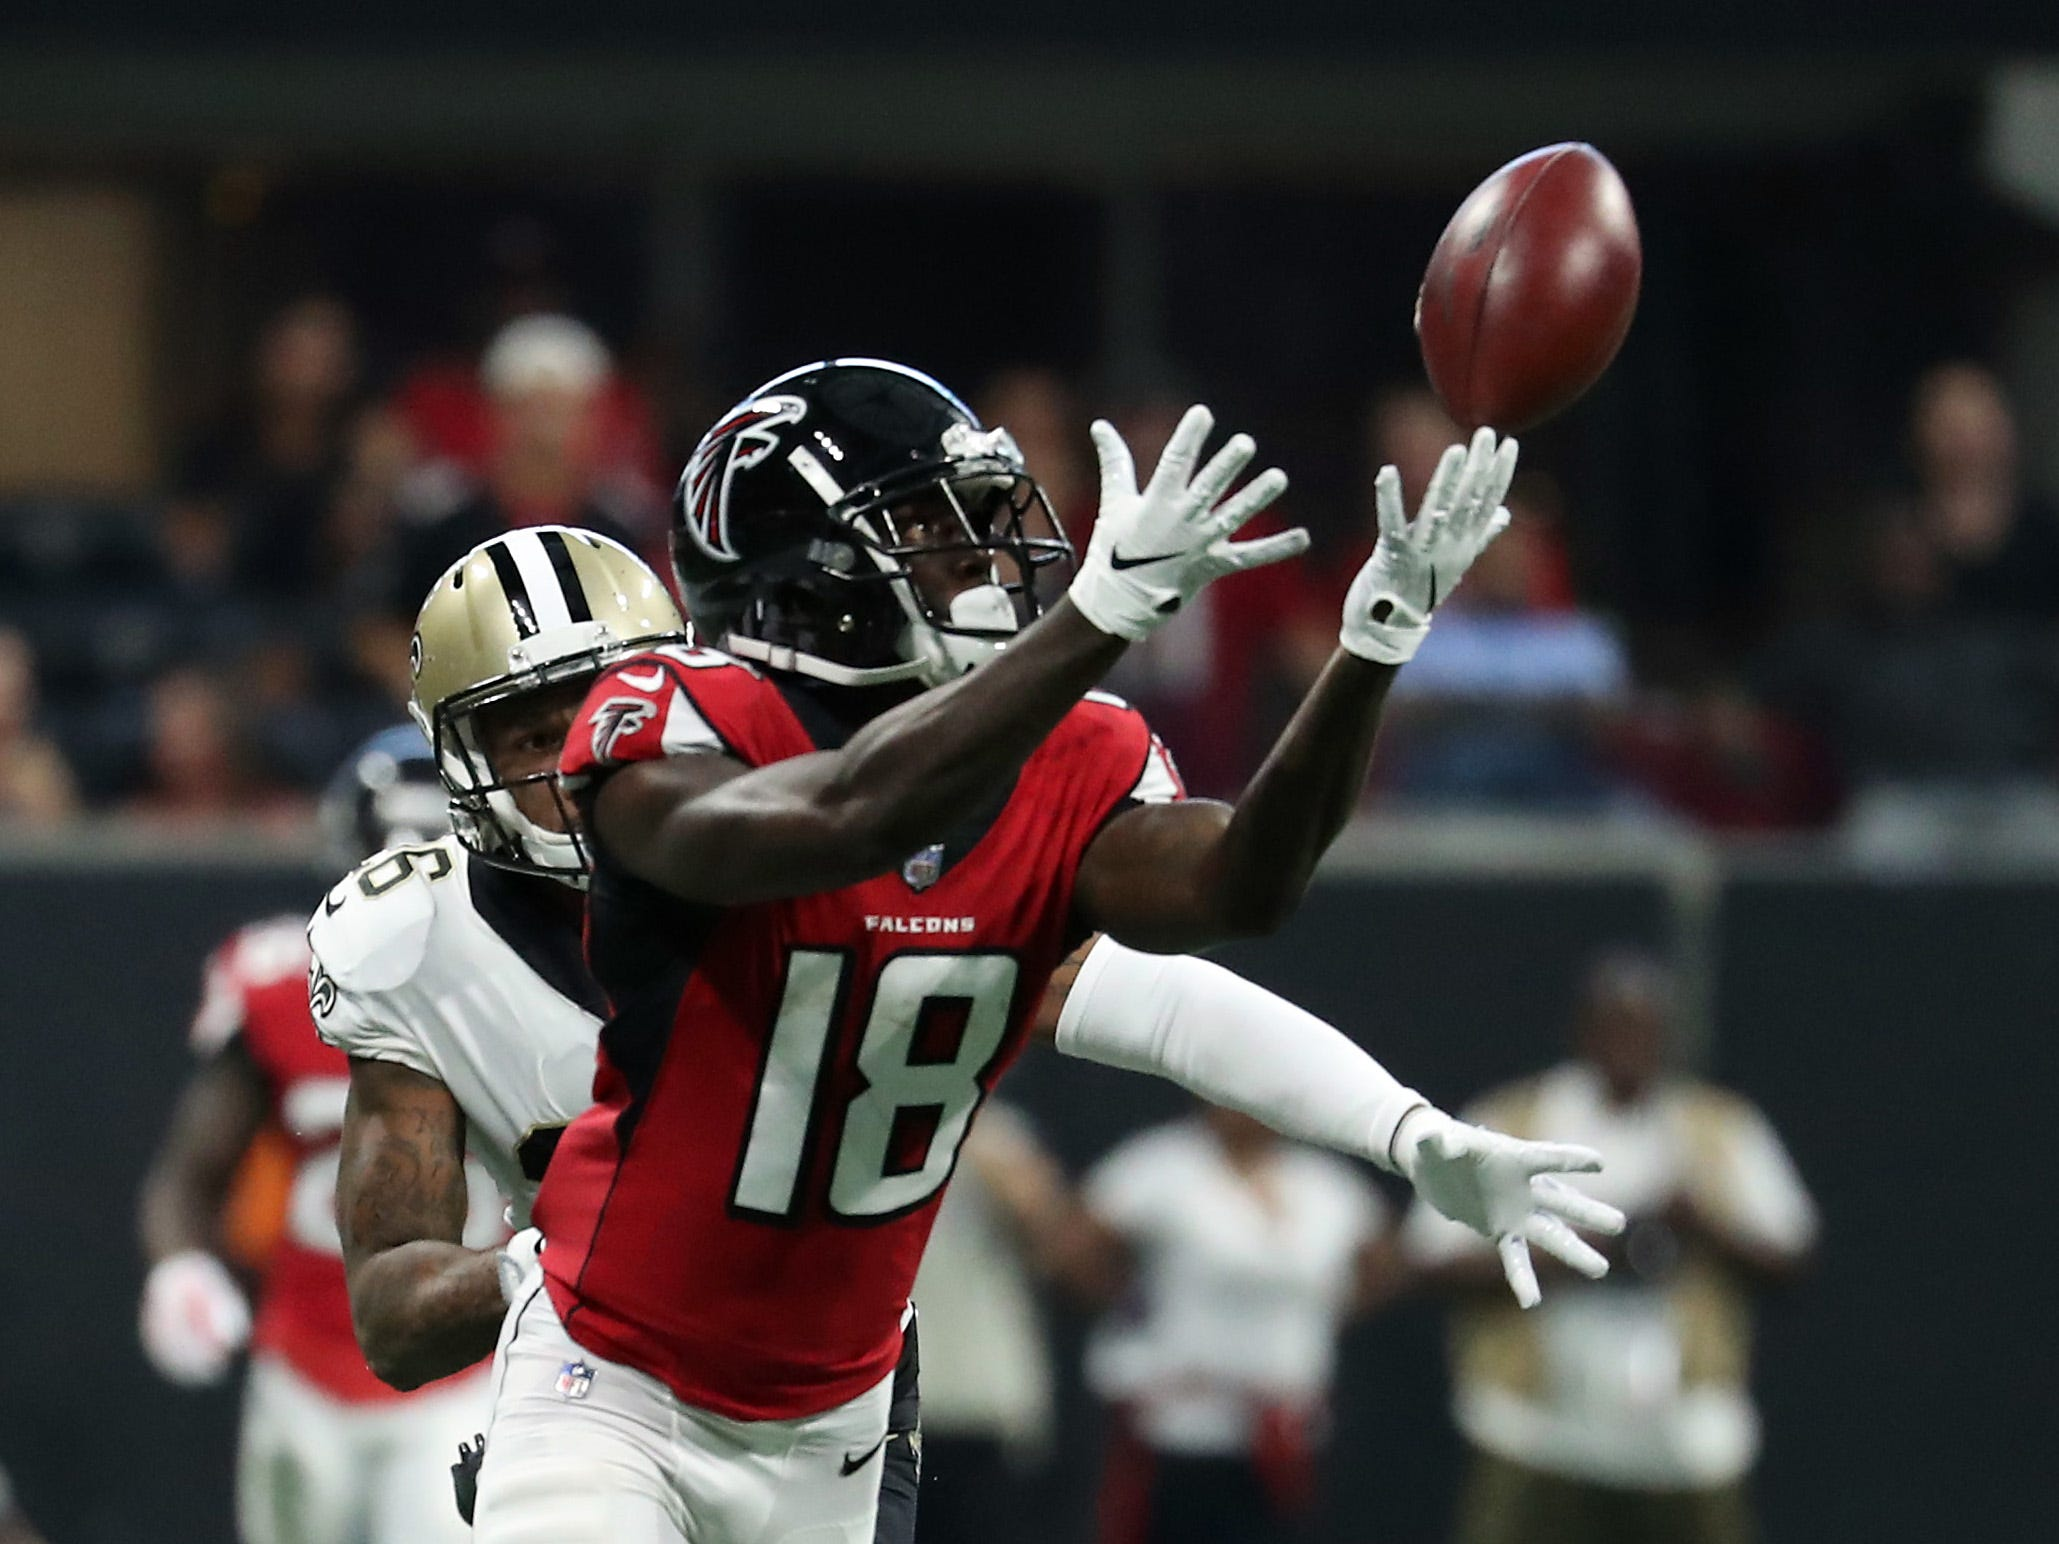 Atlanta Falcons wide receiver Calvin Ridley makes a long touchdown catch against New Orleans Saints cornerback P.J. Williams in the second quarter at Mercedes-Benz Stadium.